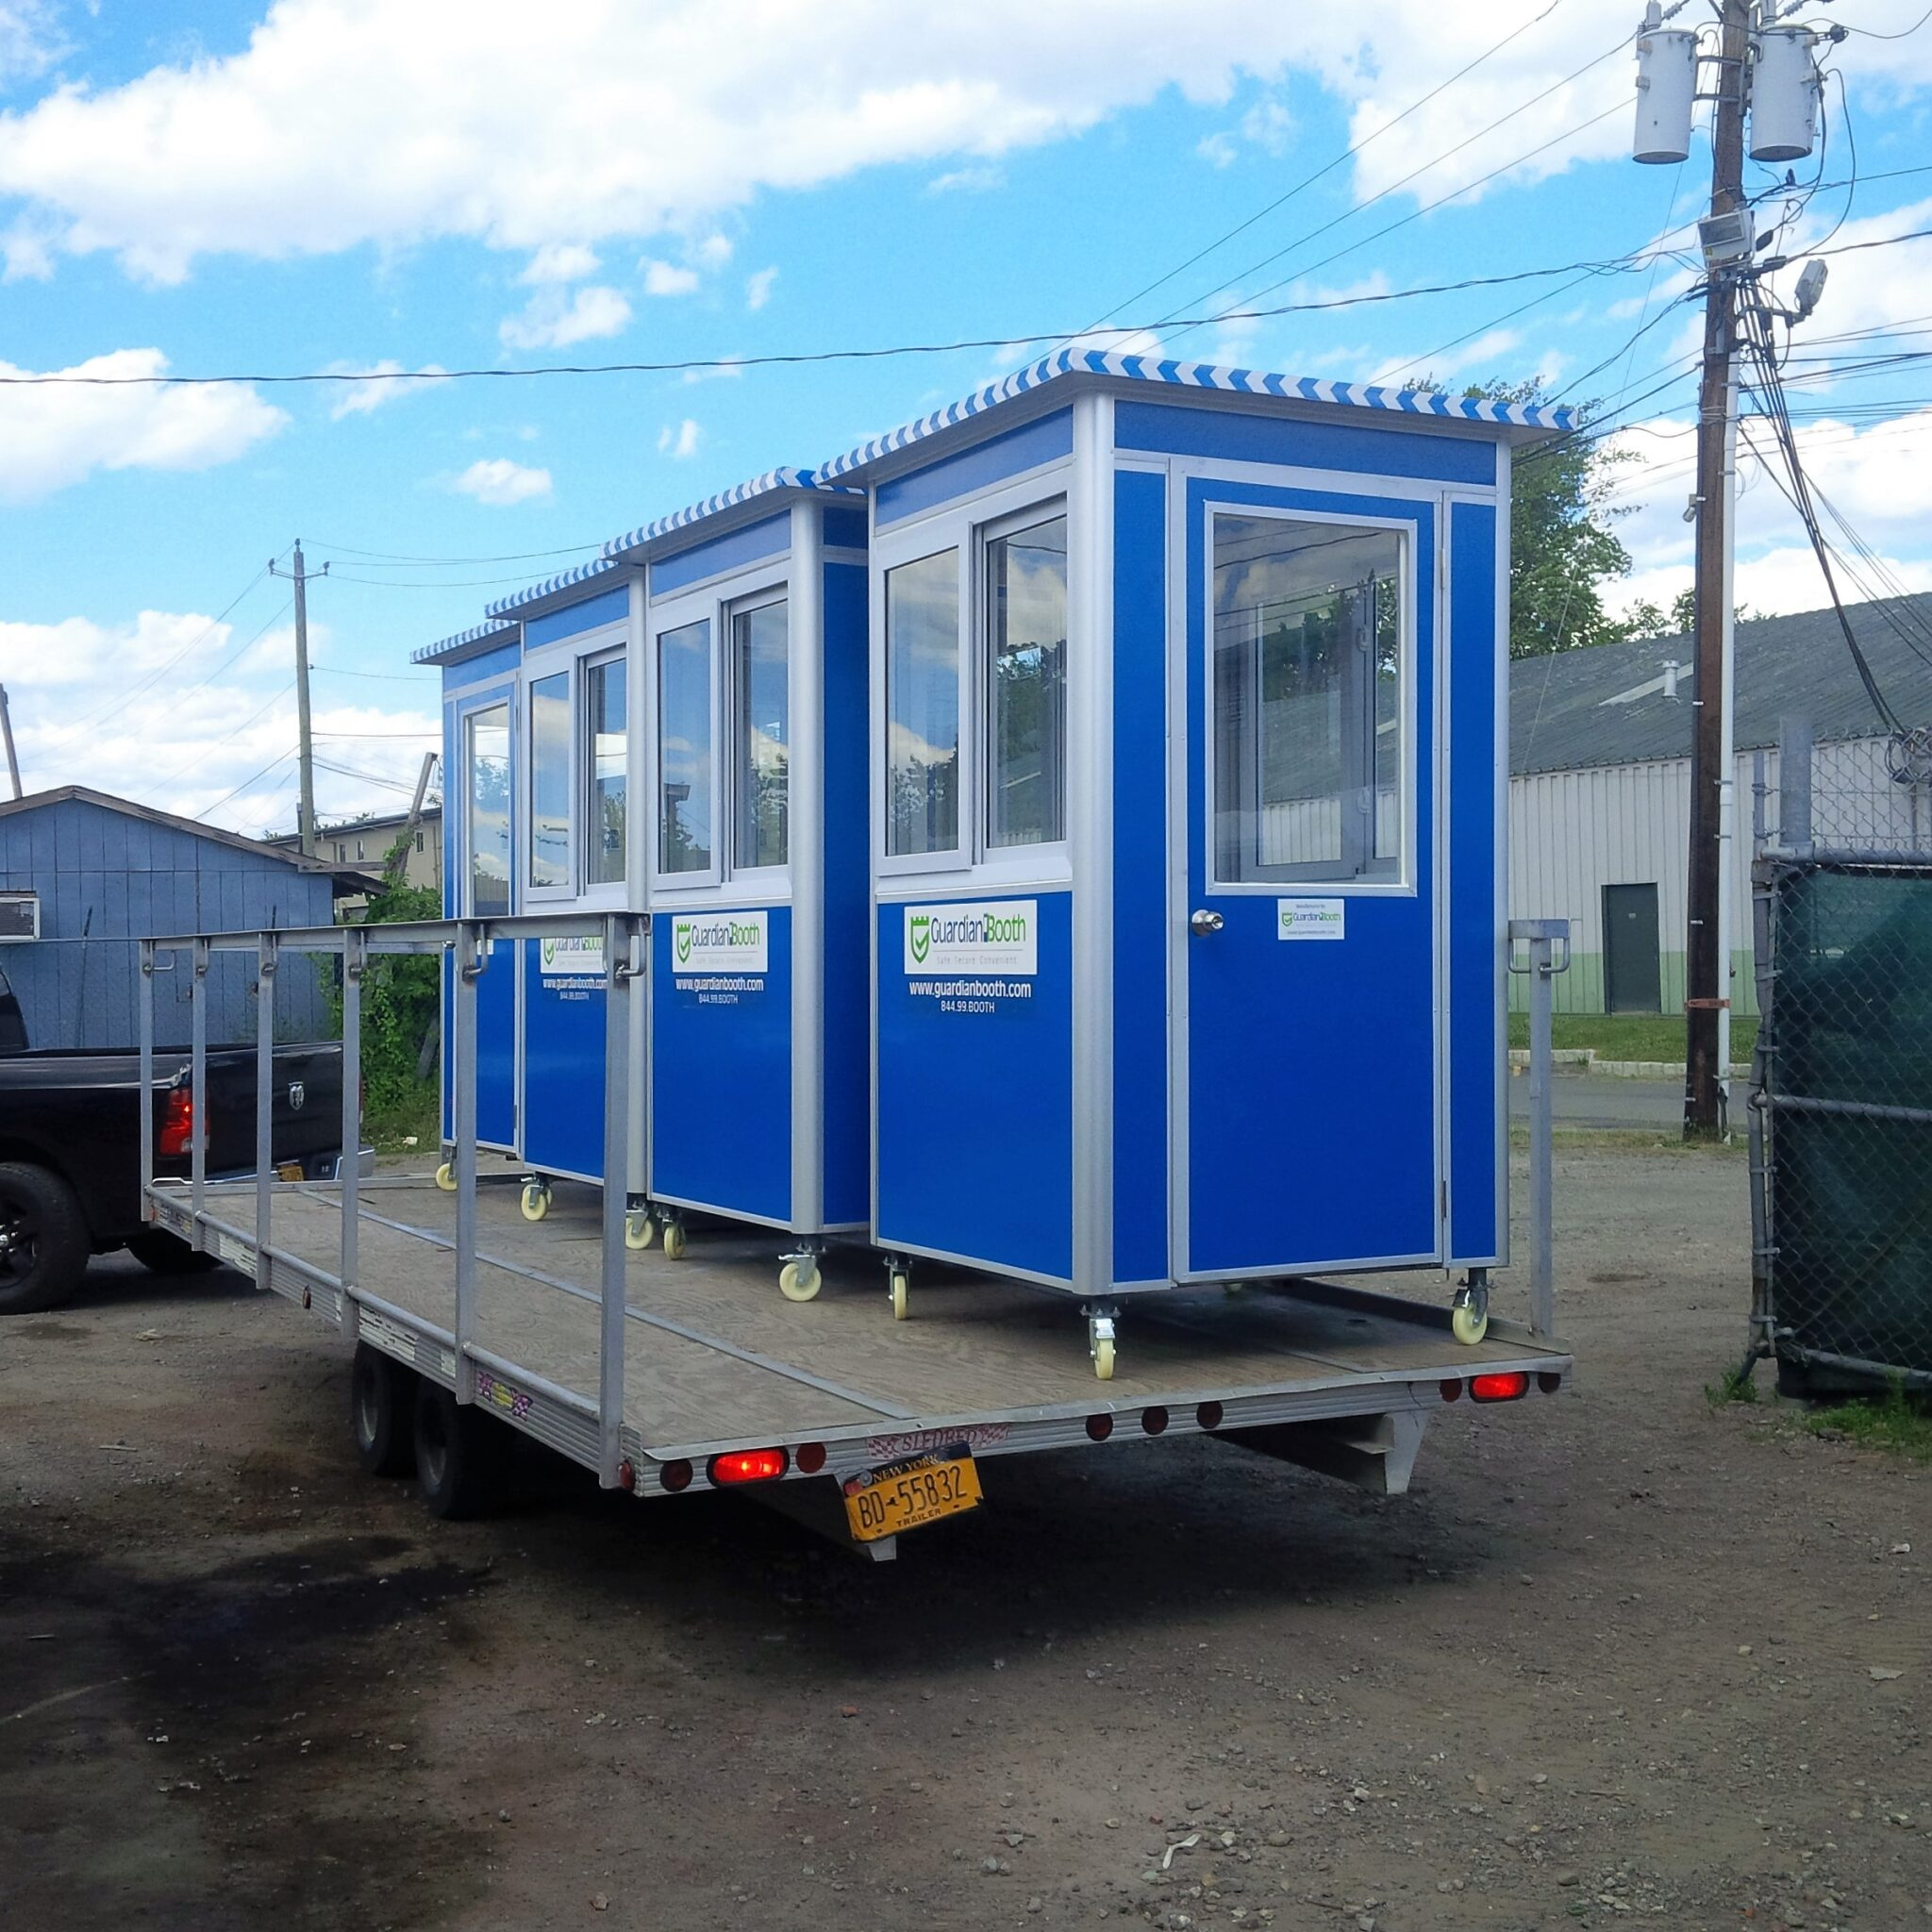 4x4 Booths ready for Delivery in New York, NY with Caster Wheels, Swing Door, and Sliding Windows